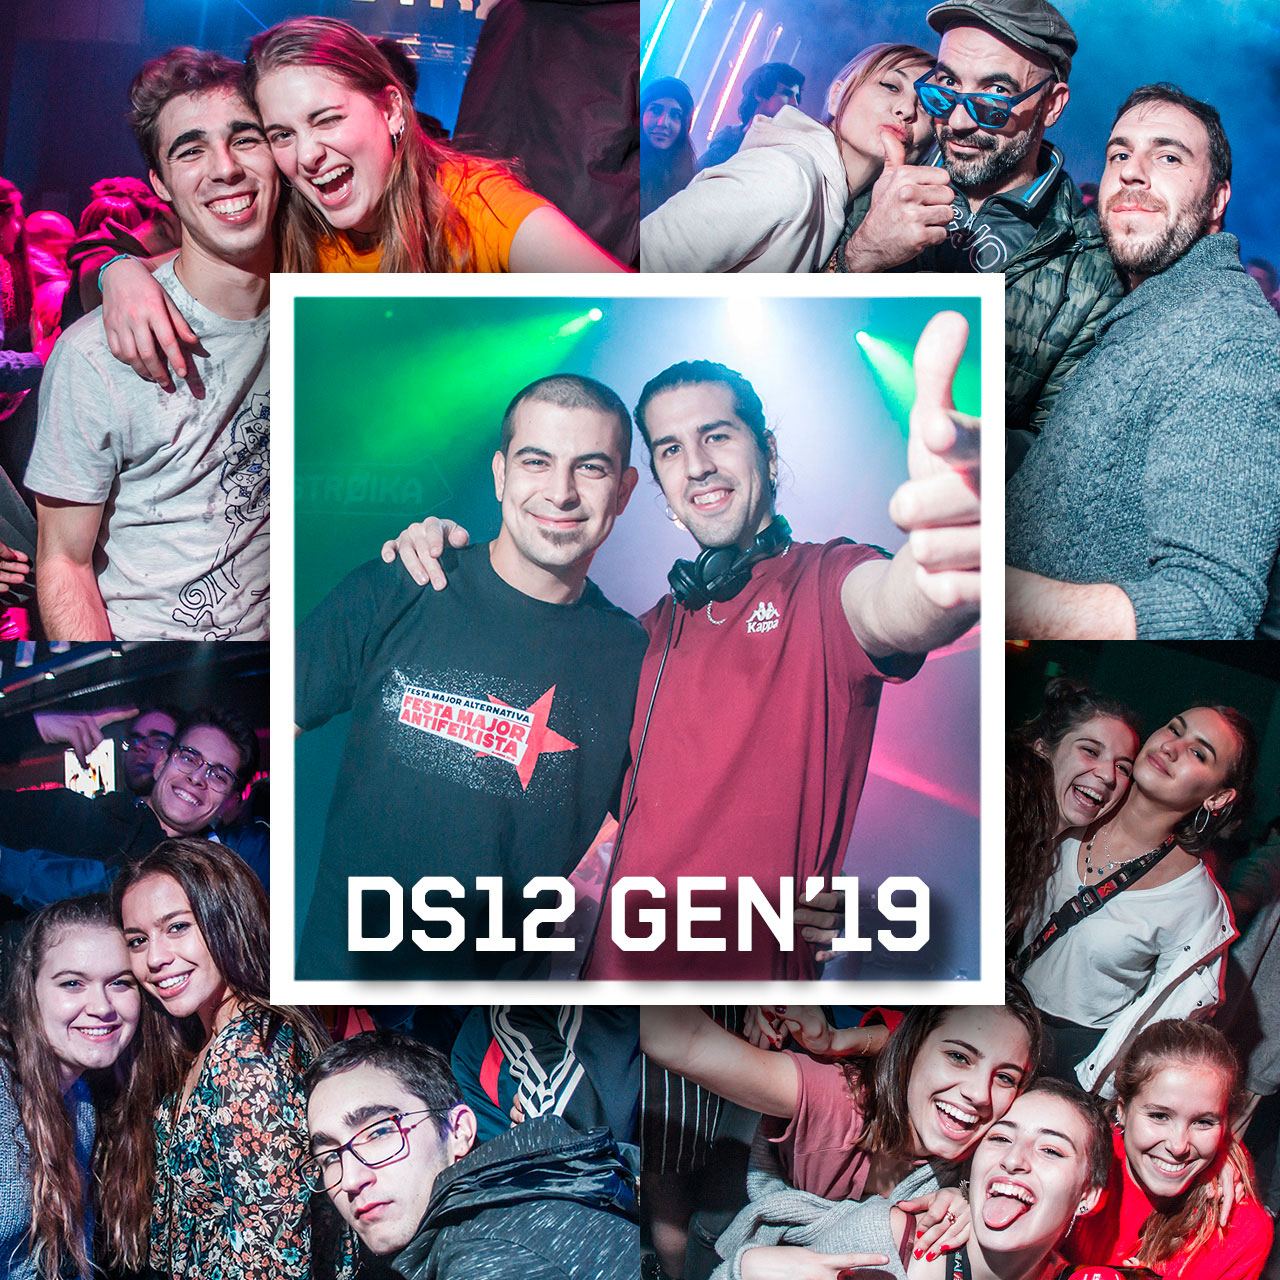 DS12 GEN'19 // STROIKA SESSIONS